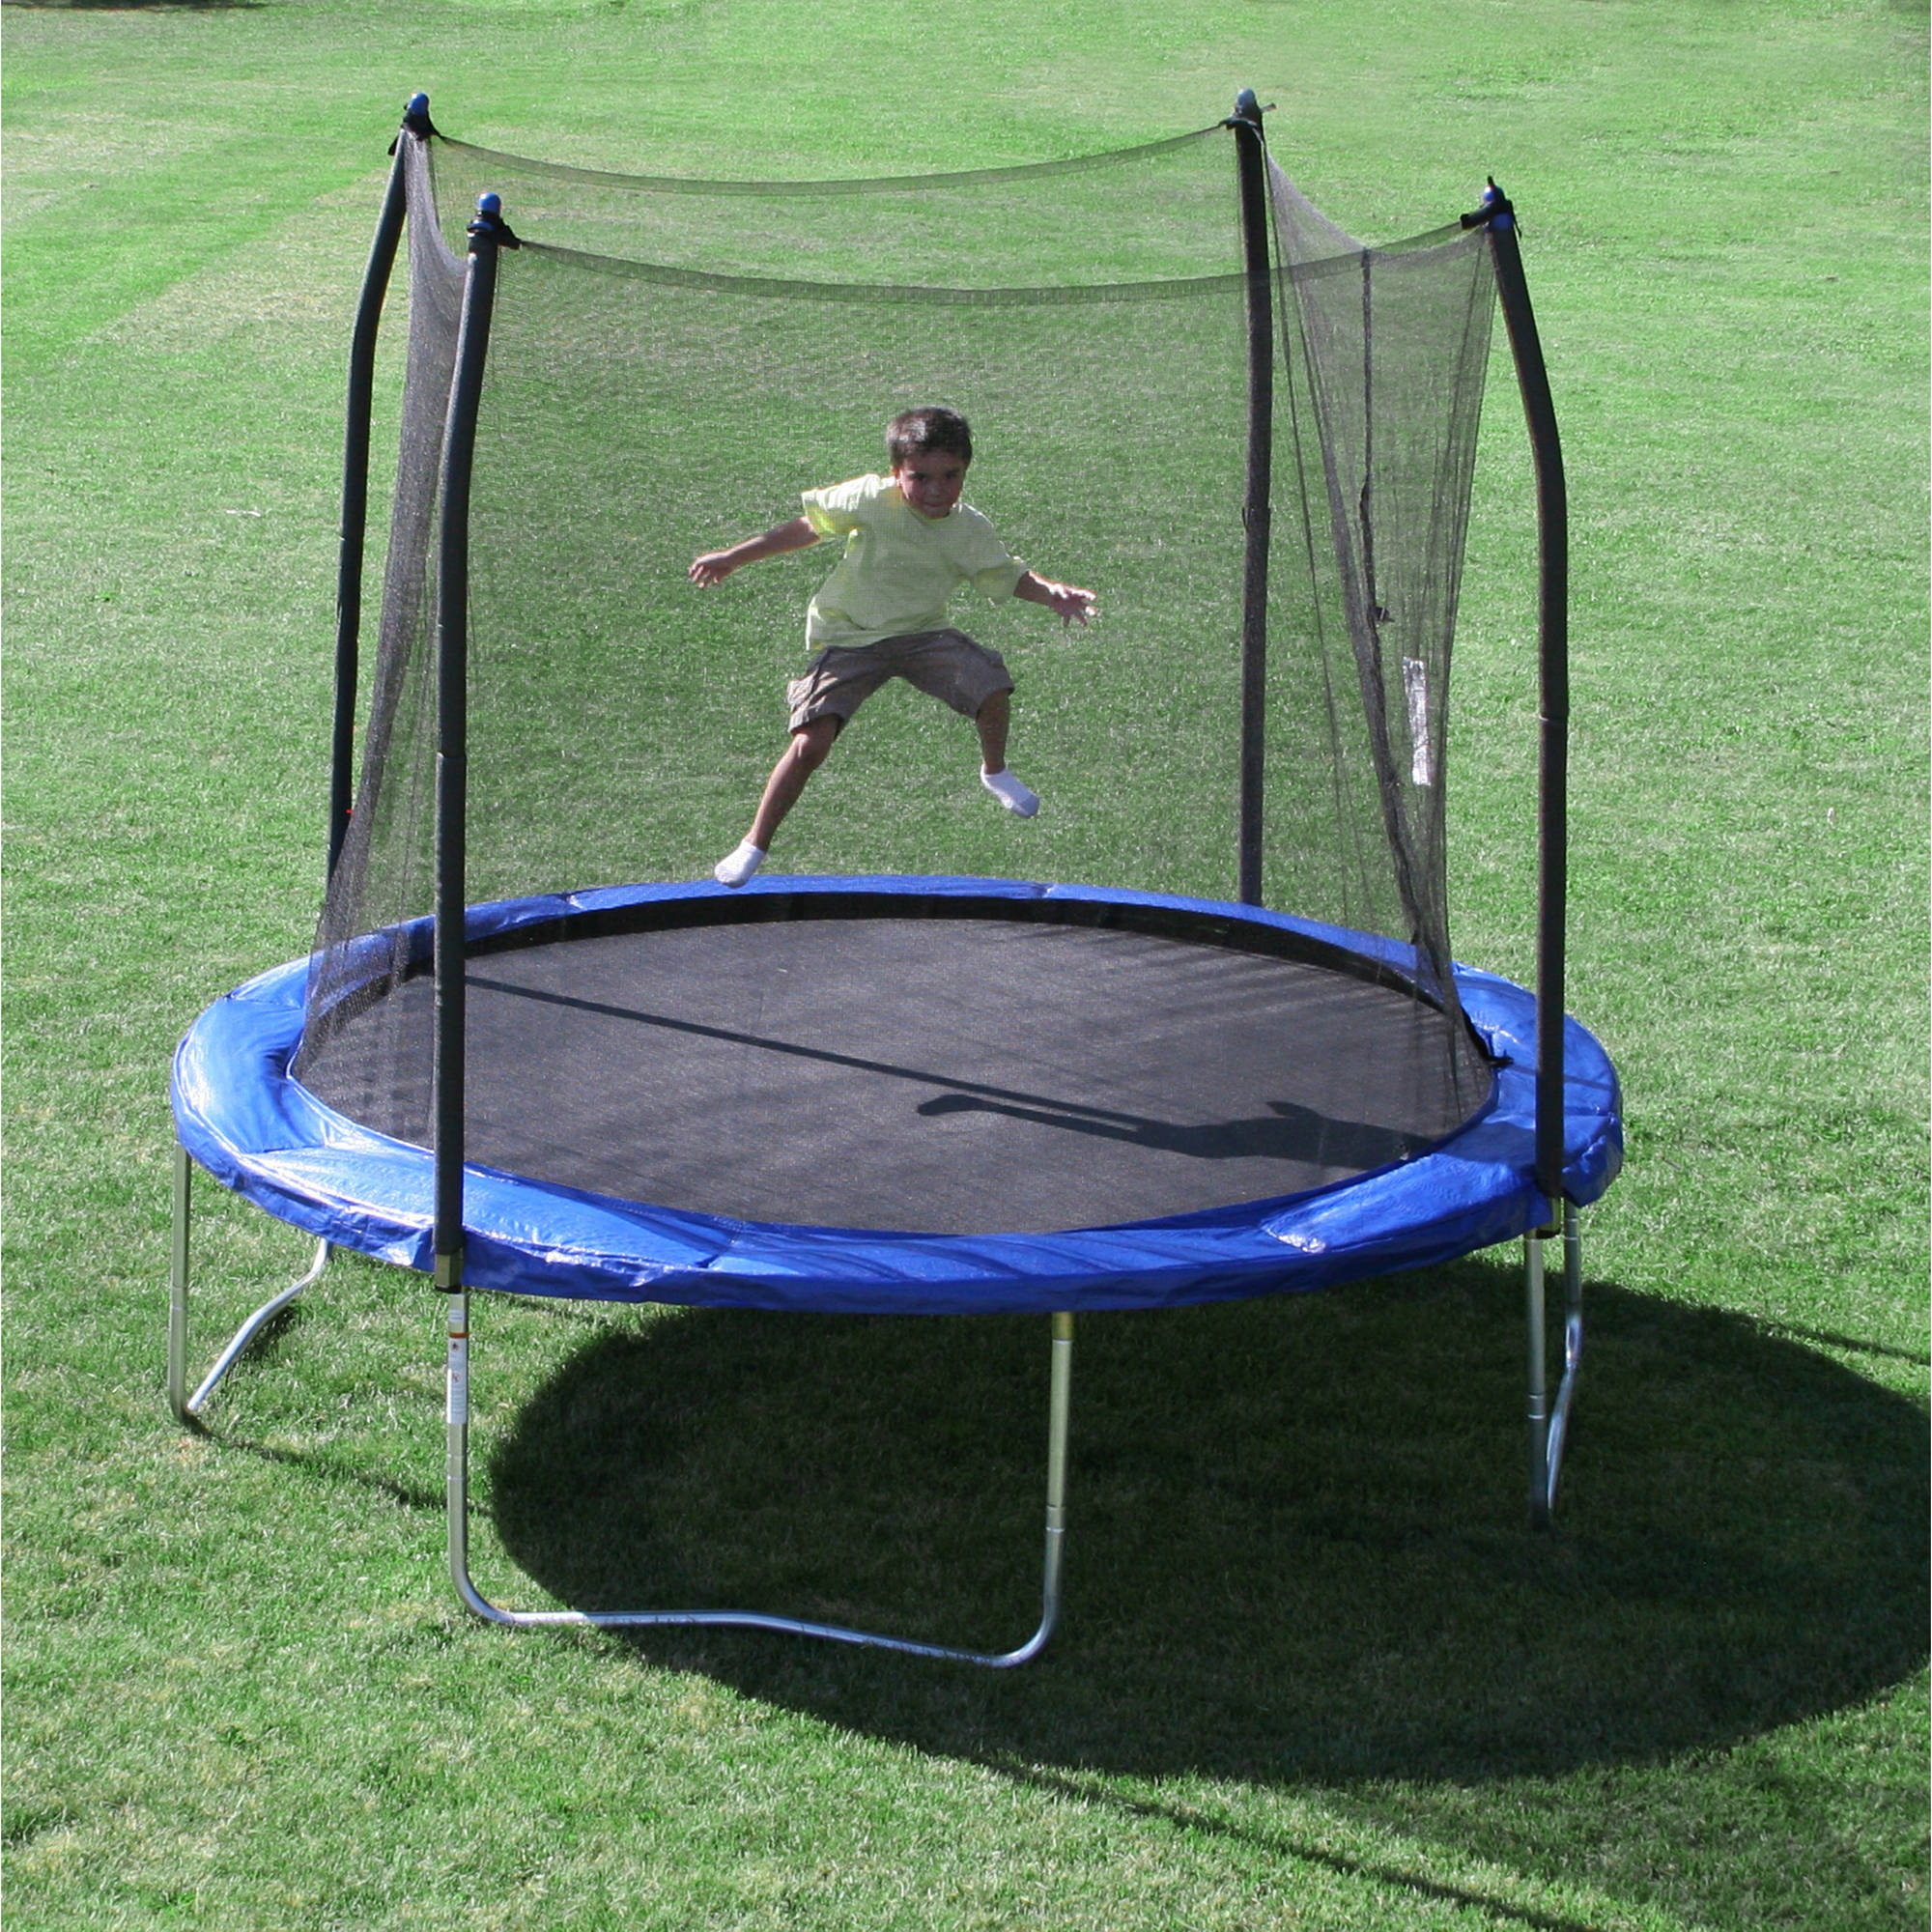 Skywalker 10' Round Trampoline and Safety Enclosure Combo with Windstakes